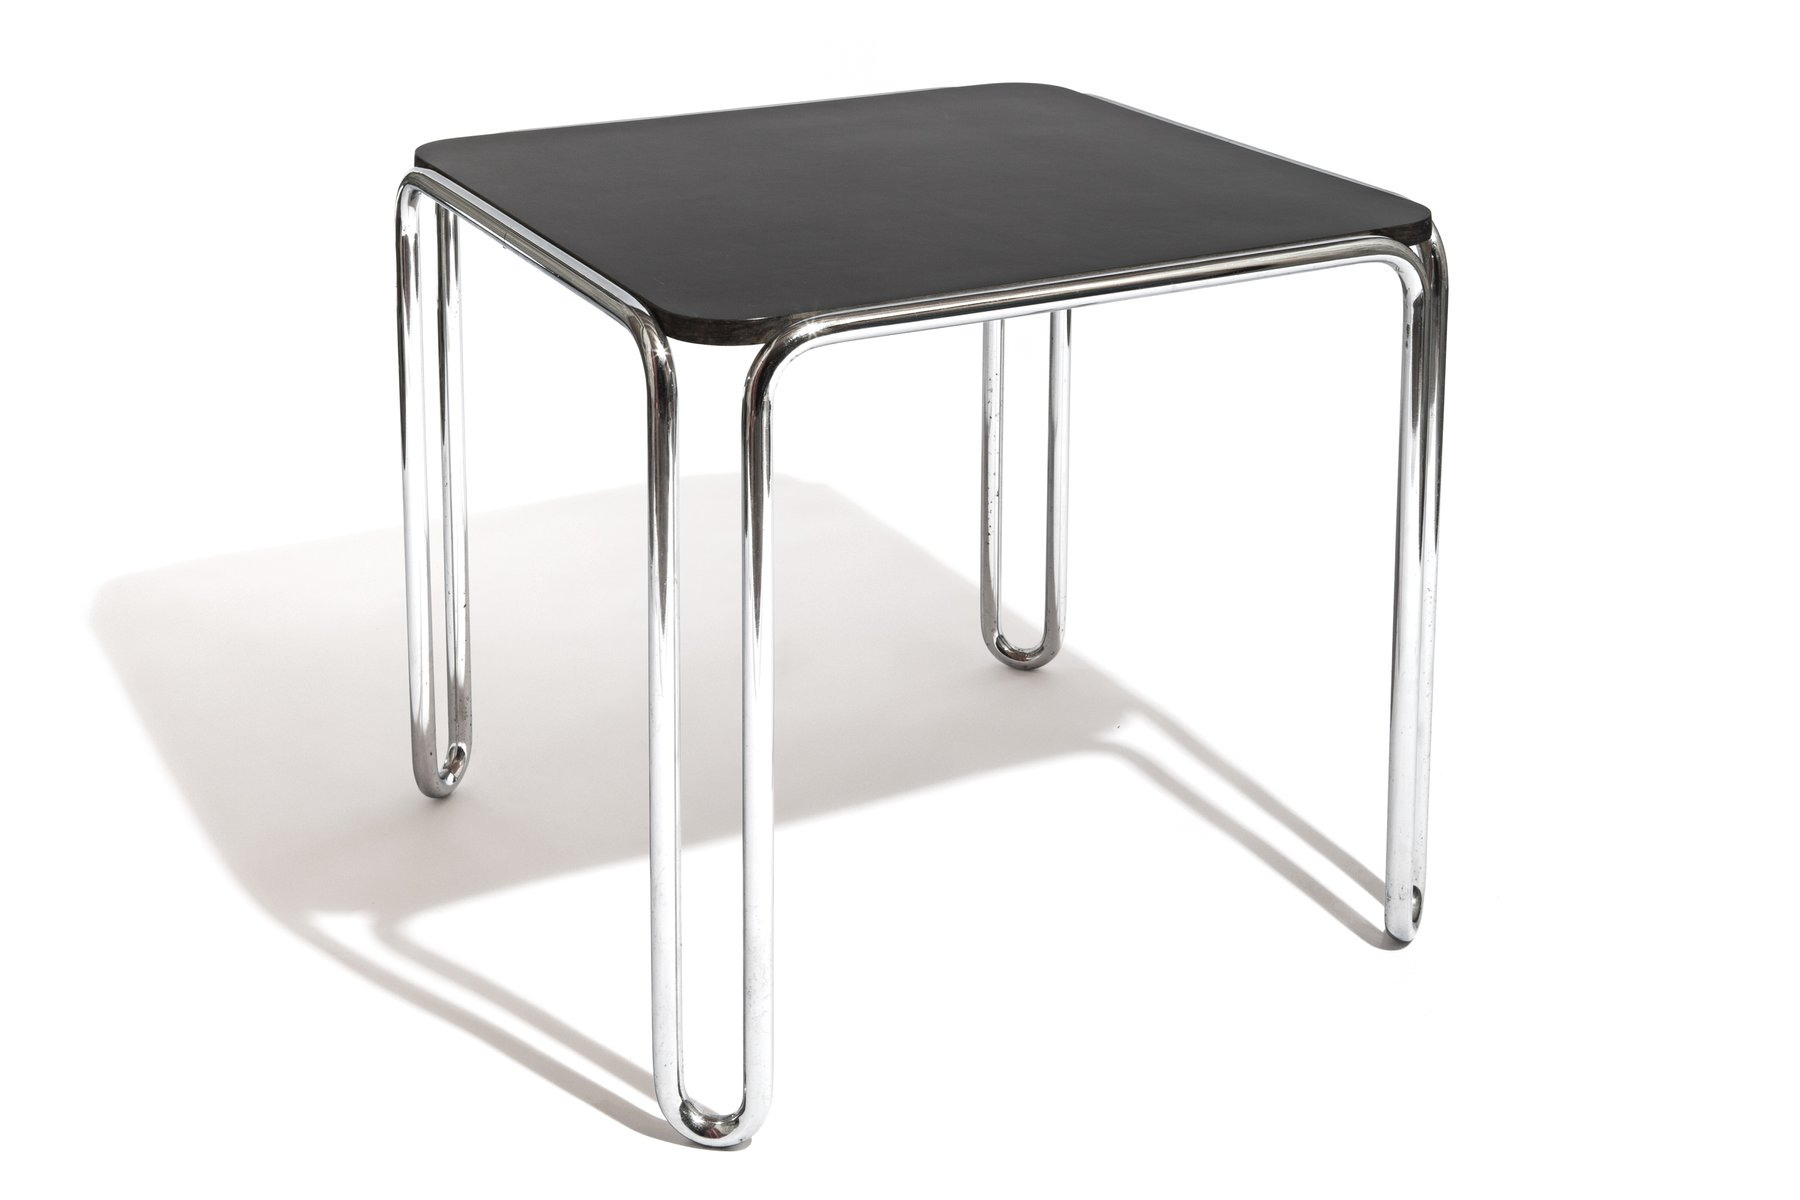 B10 Table by Marcel Breuer 1940s for sale at Pamono